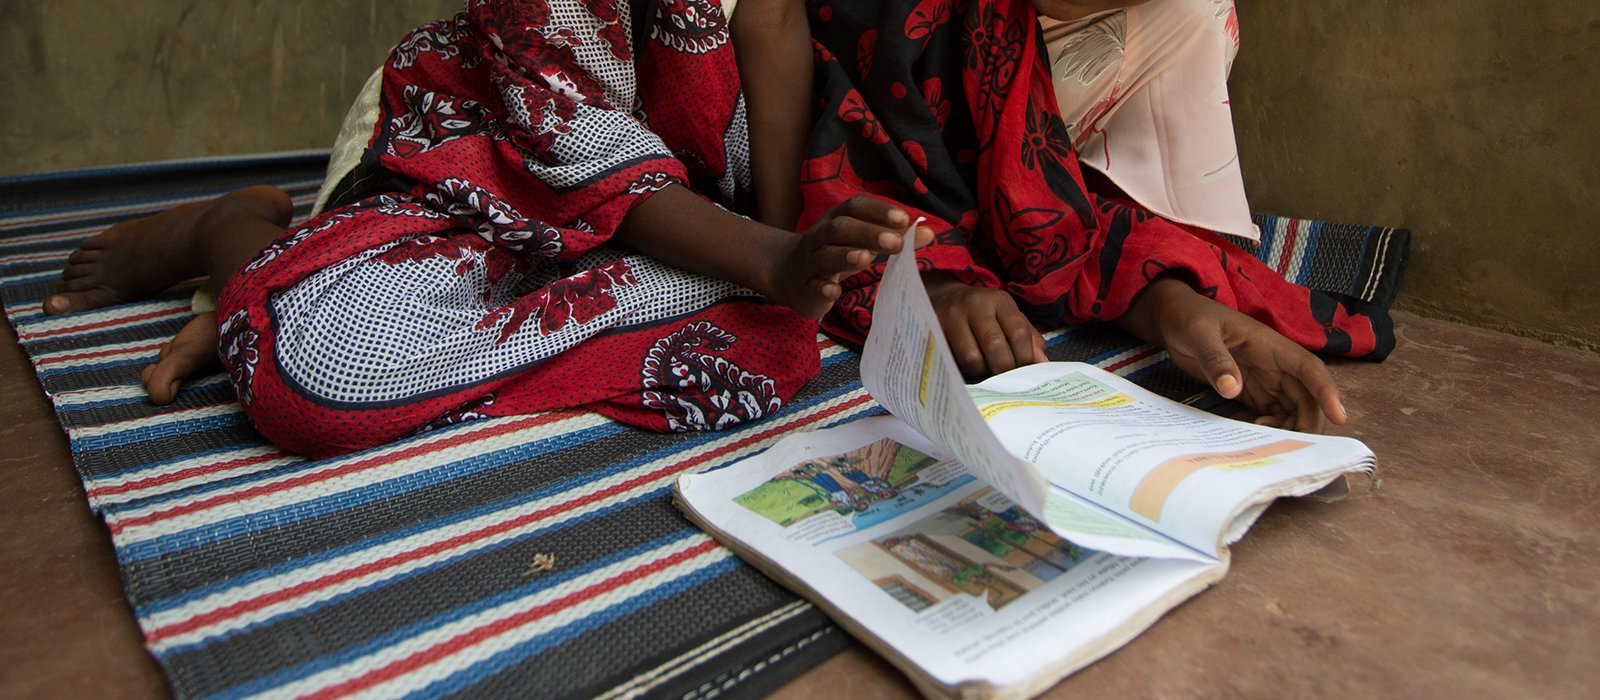 Violence Against Children Is On The Rise In Tanzania